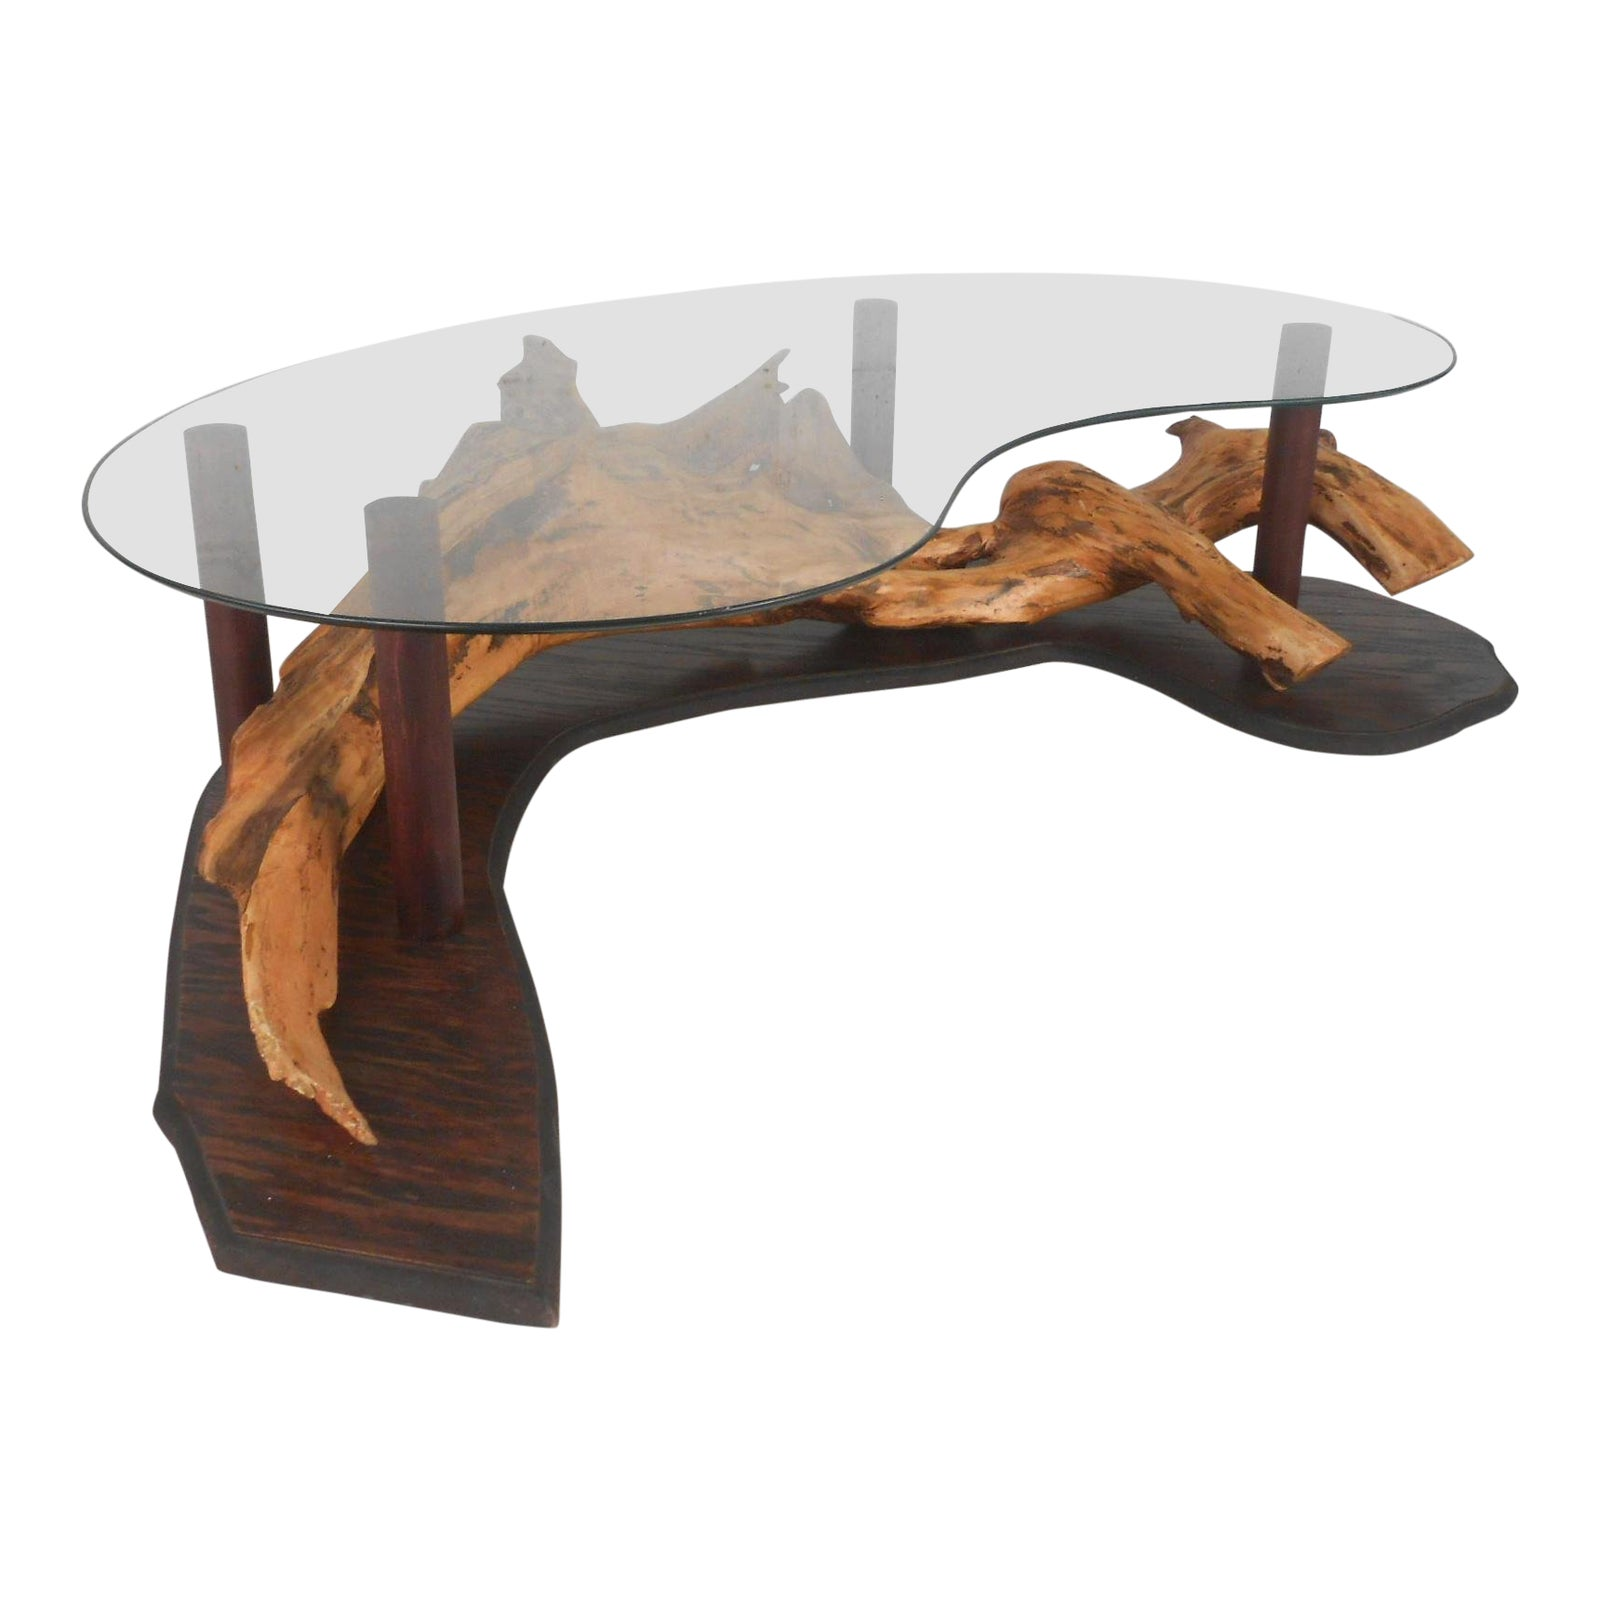 Unique Mid Century Modern Rustic Driftwood Glass Top Coffee Table Chairish